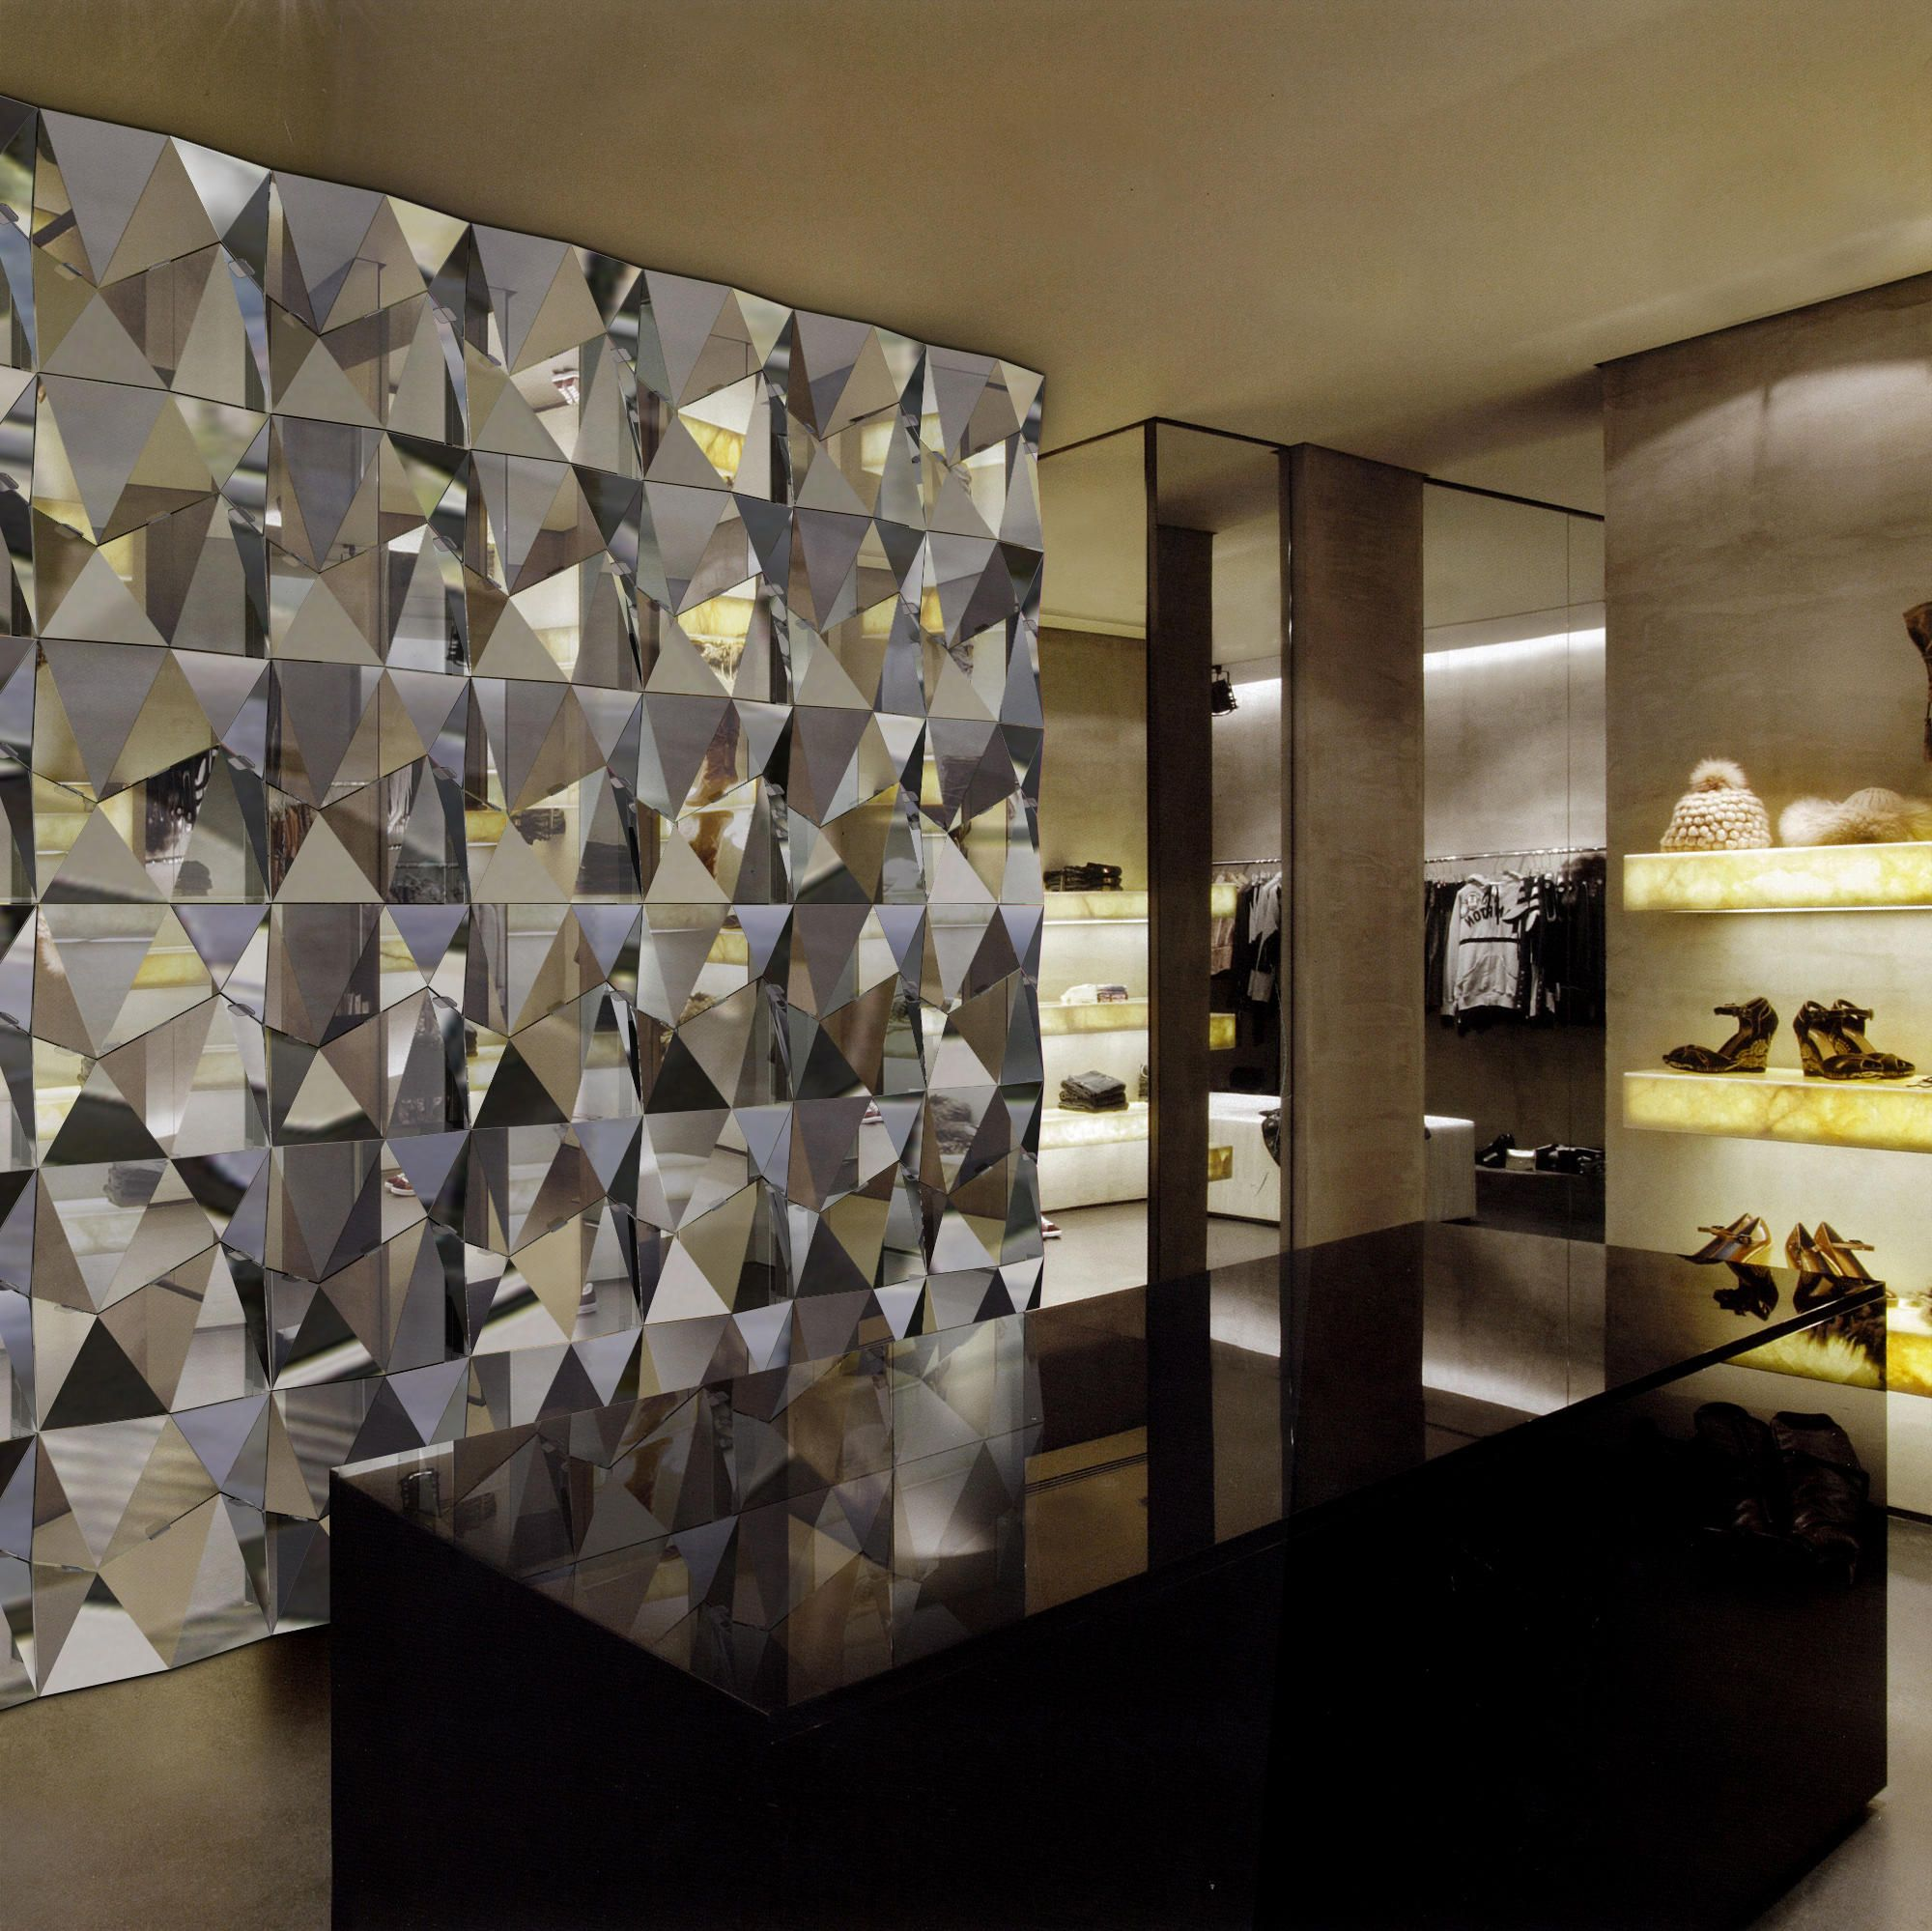 Wall Mounted Modular Polygon Facets In Mirror Composite Dimensions Shown 3000 X 3000mm 10 X 10 Materials Shown Acm Design Crystal Wall Custom Lighting